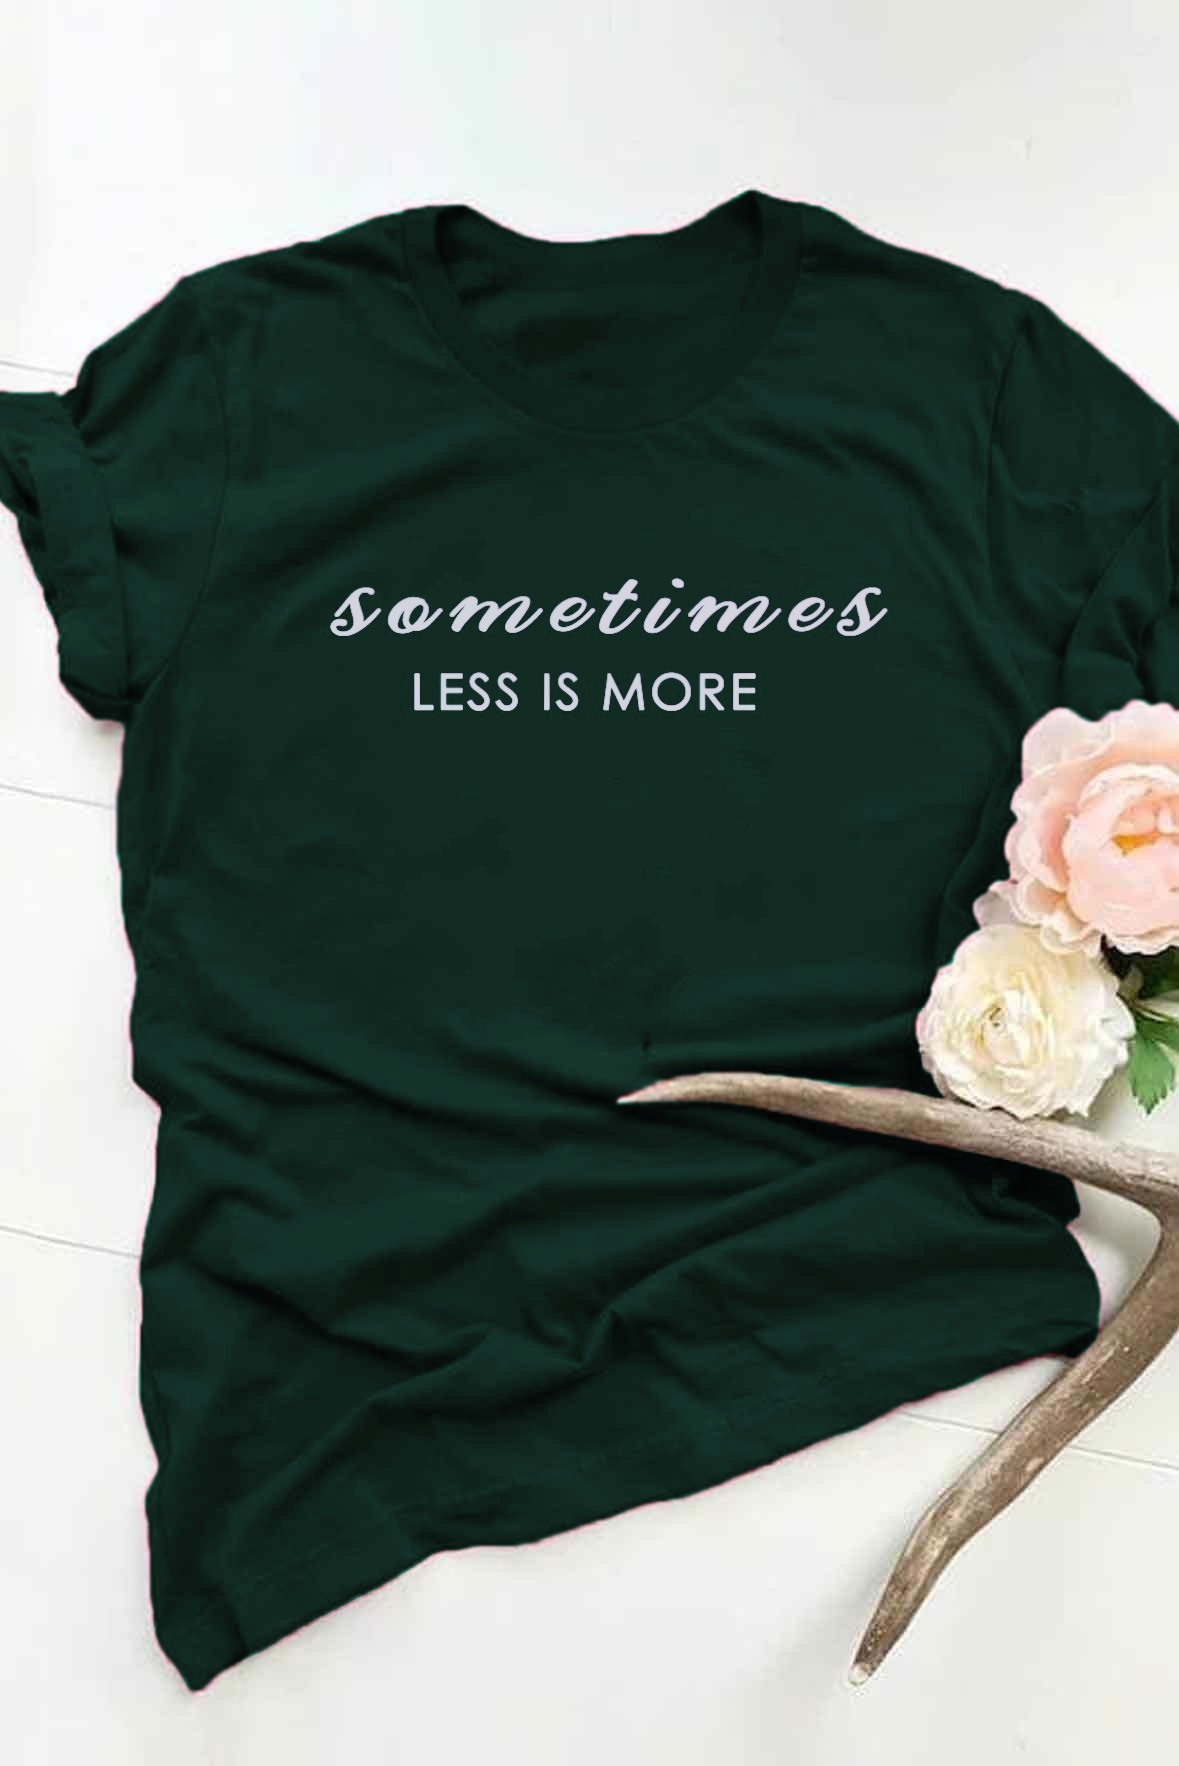 Less is more t-shirt Green